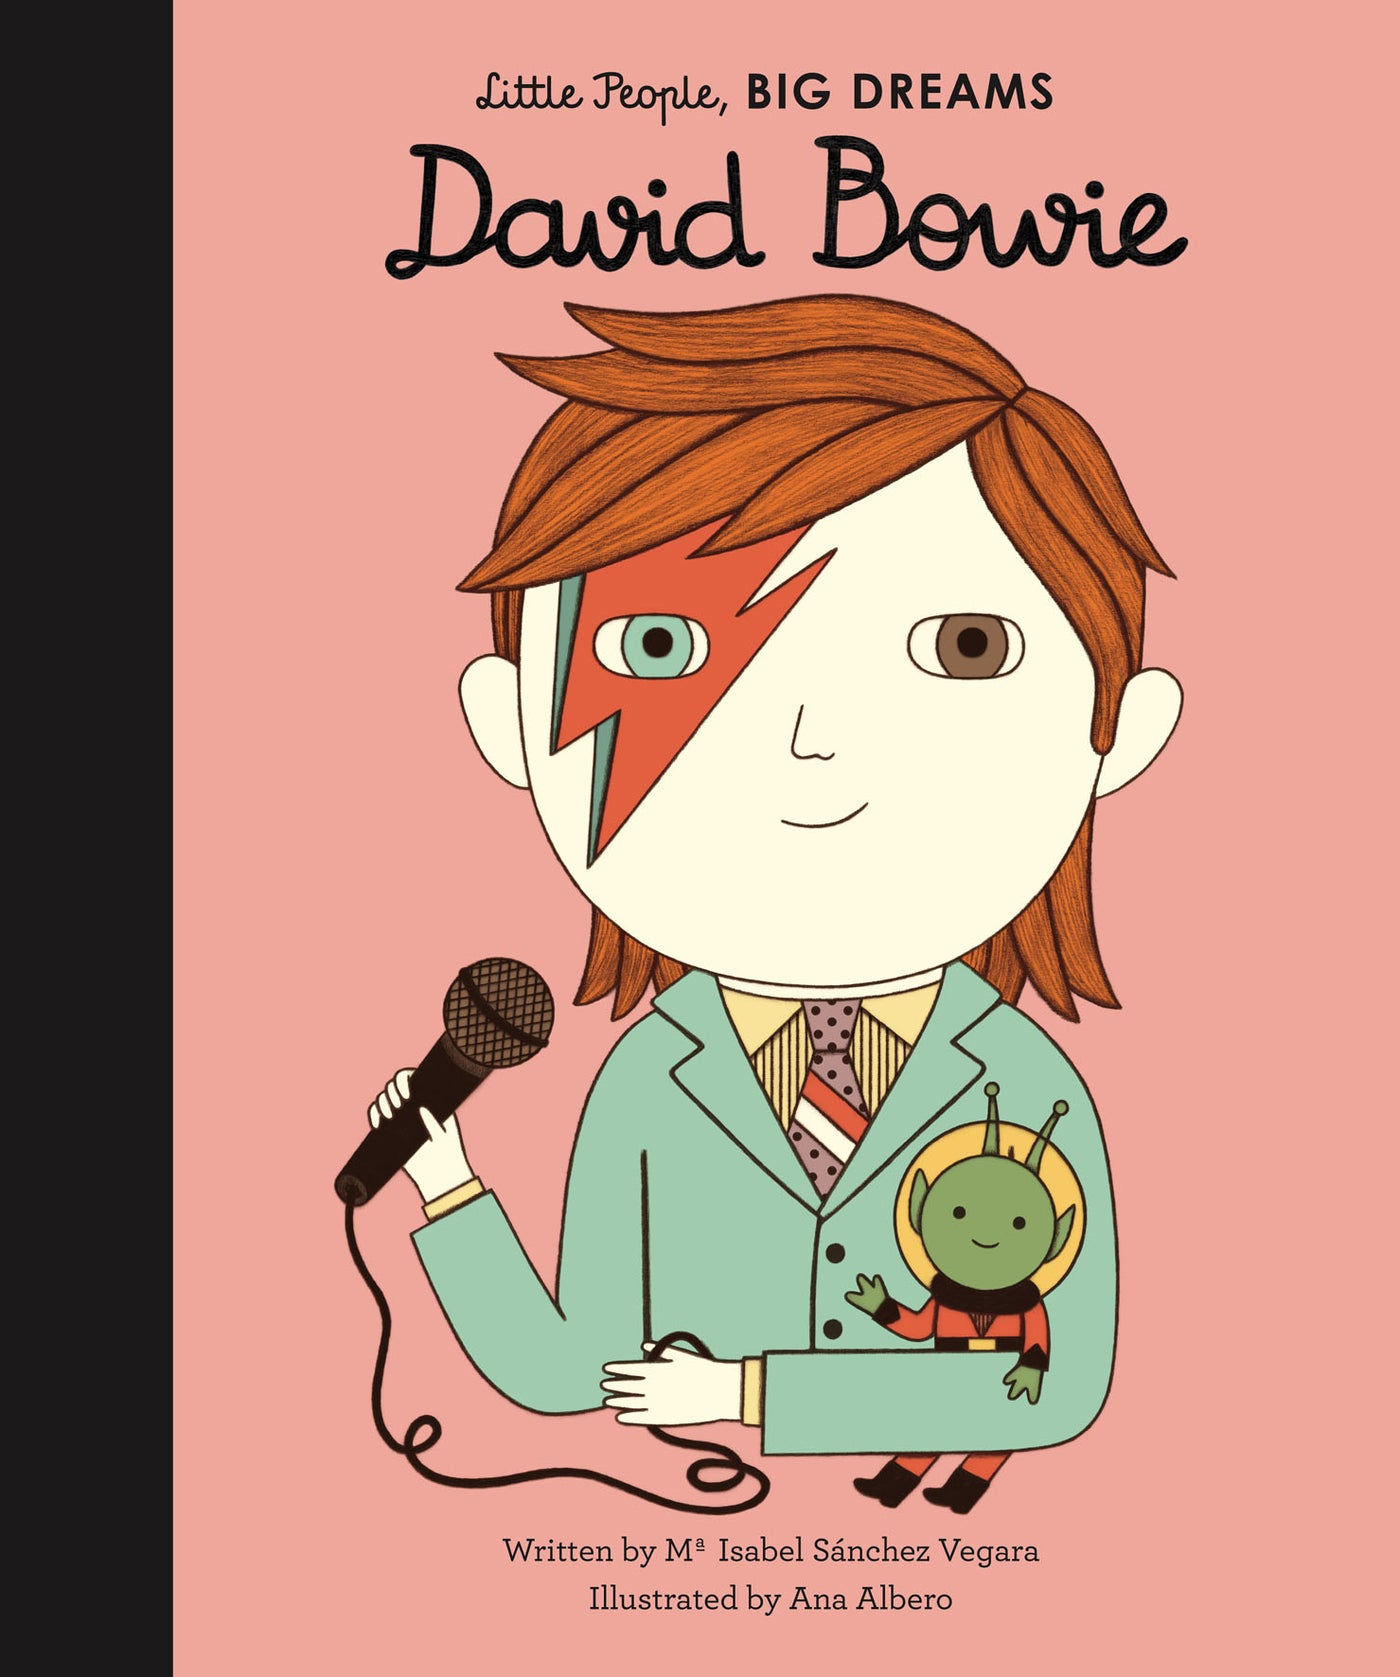 Little People Big Dreams: David Bowie Book